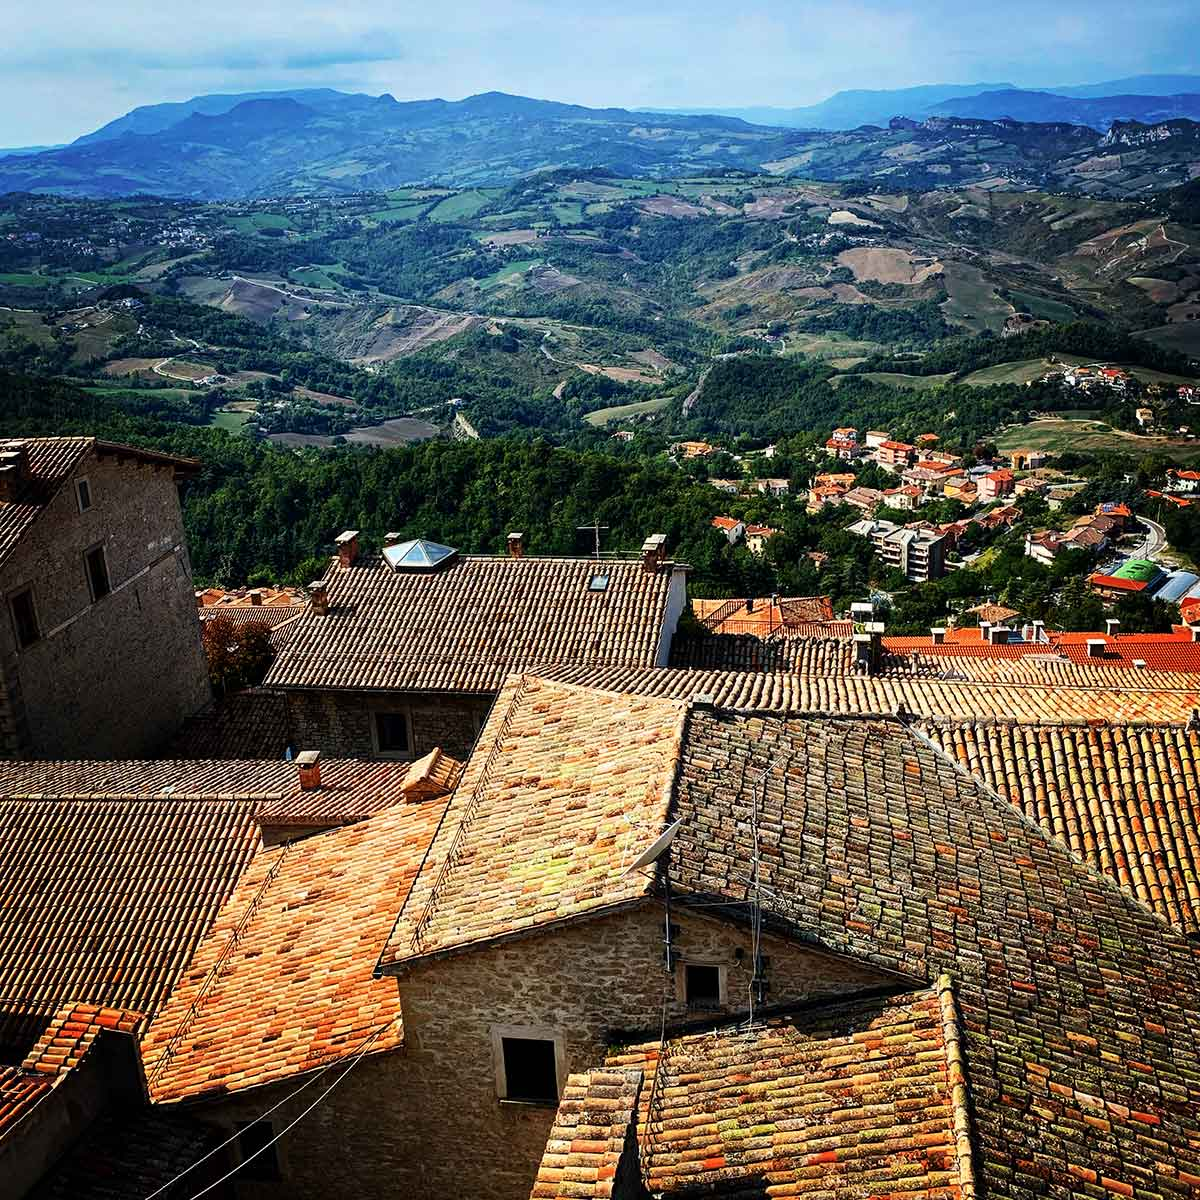 View of Italian countryside from San Marino mountaintop